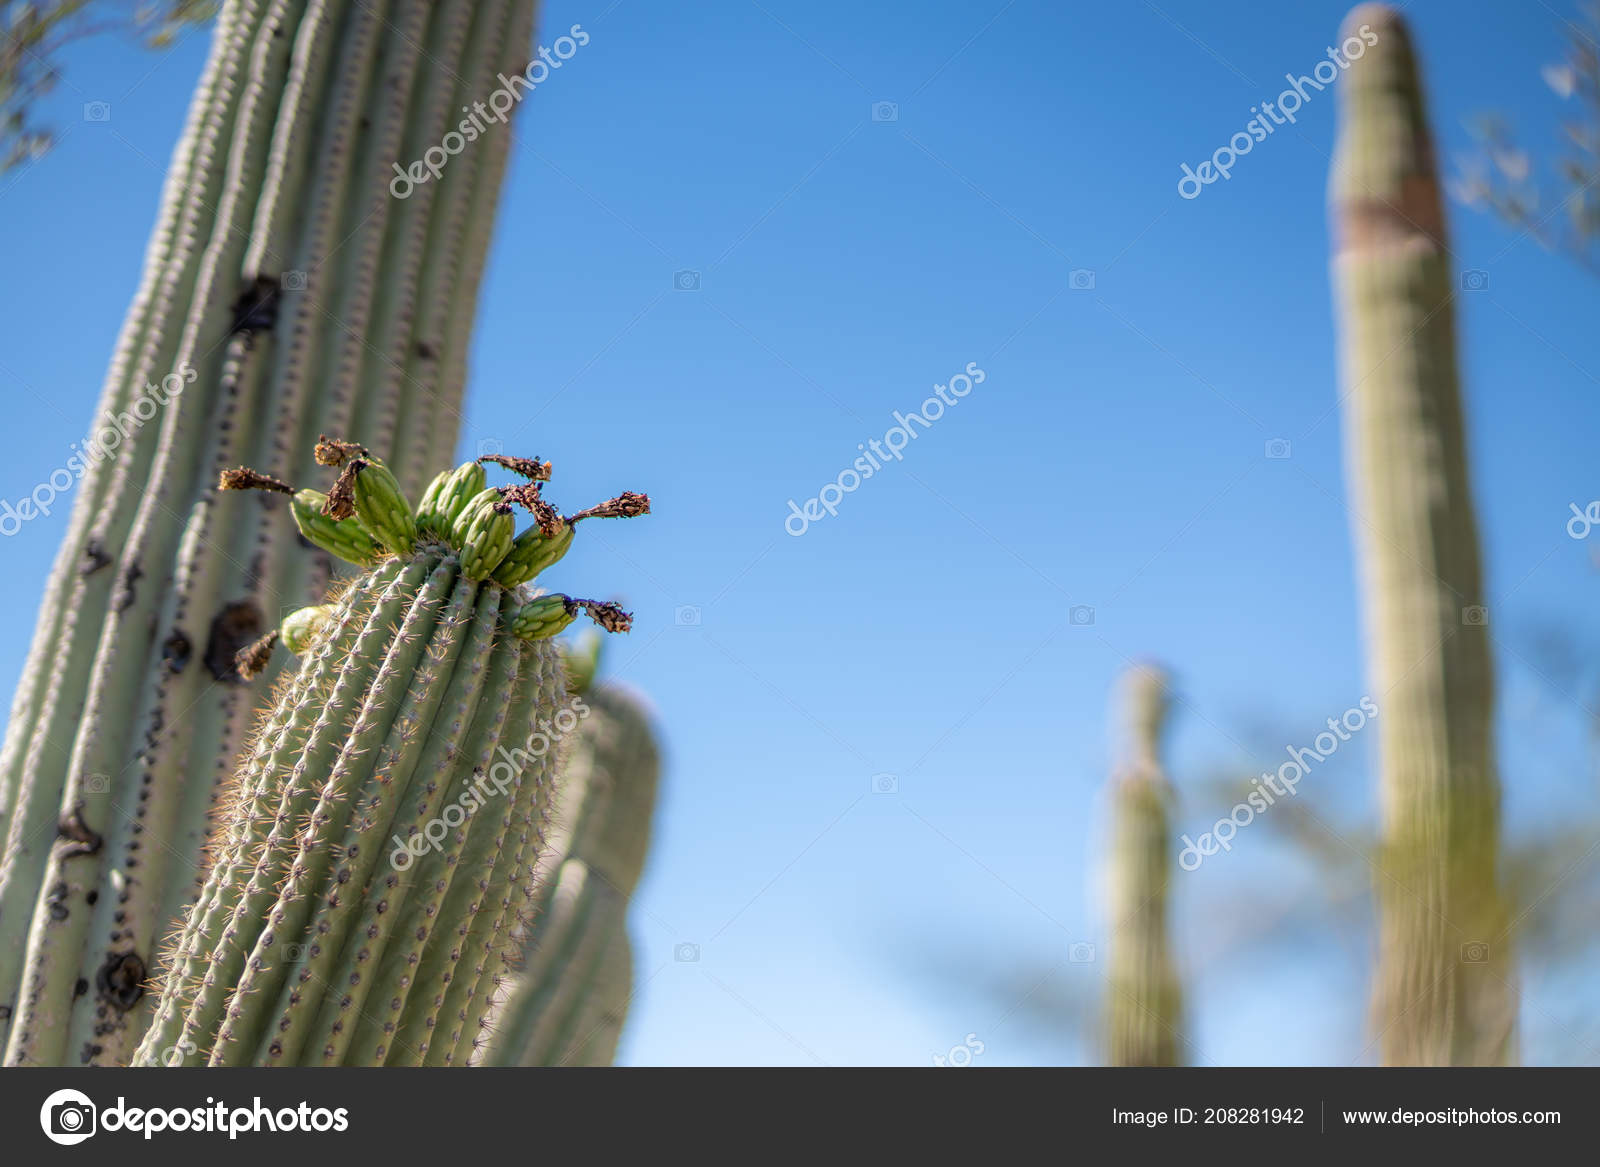 Saguaro Cactus Blossoms With White Flower And Fruit Stock Photo